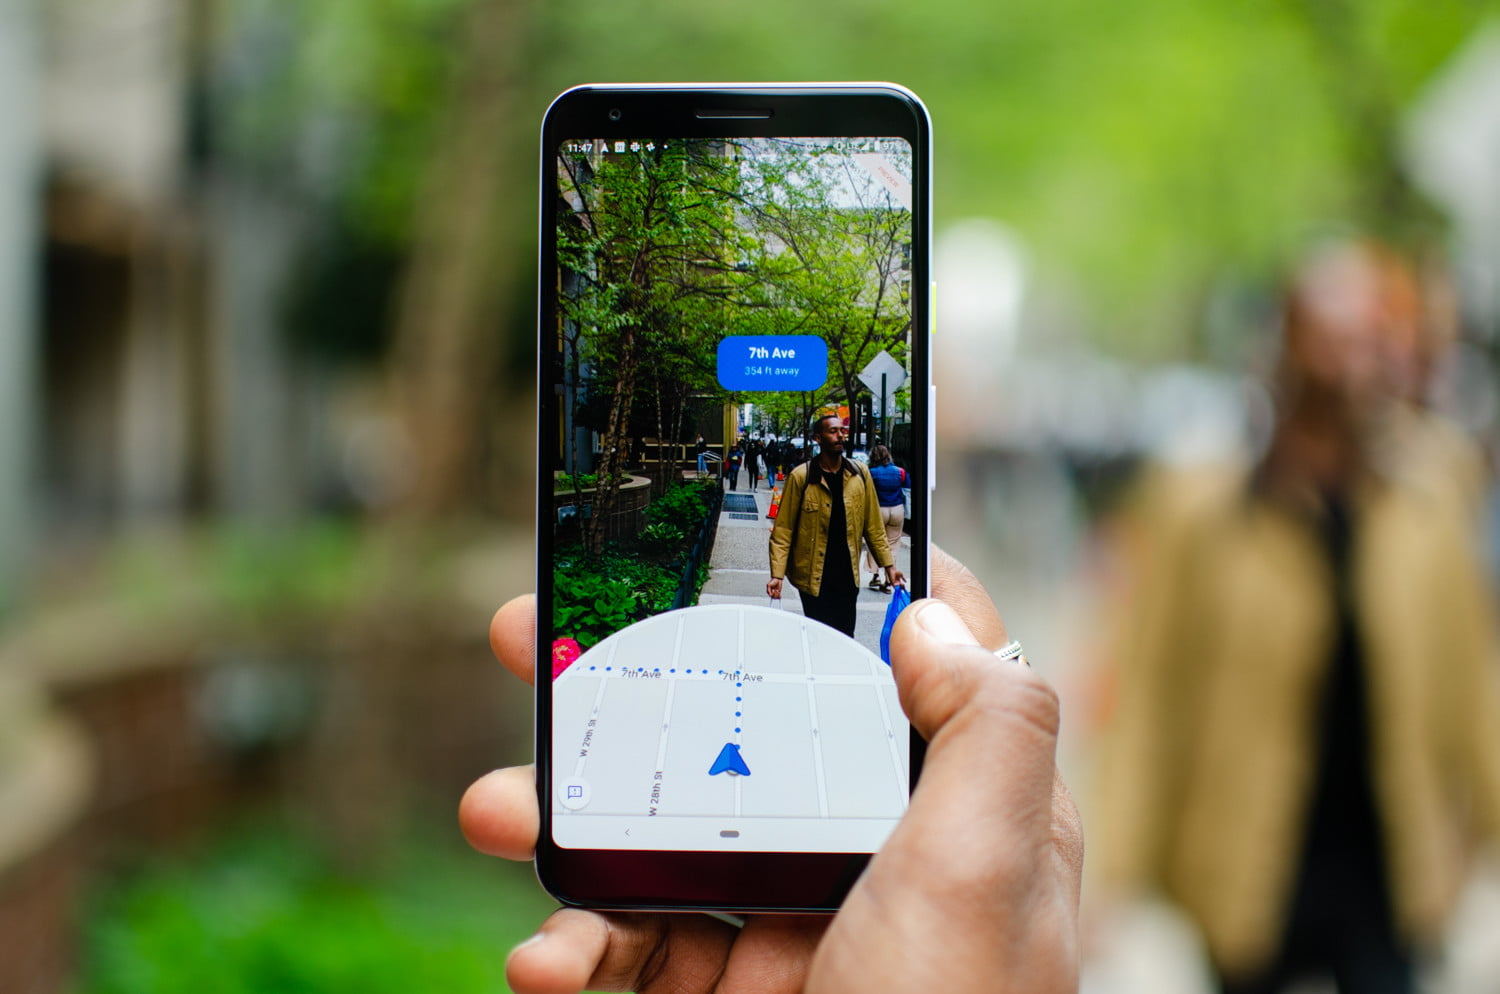 How To Navigate With The AR Mode In Google Maps | Digital Trends